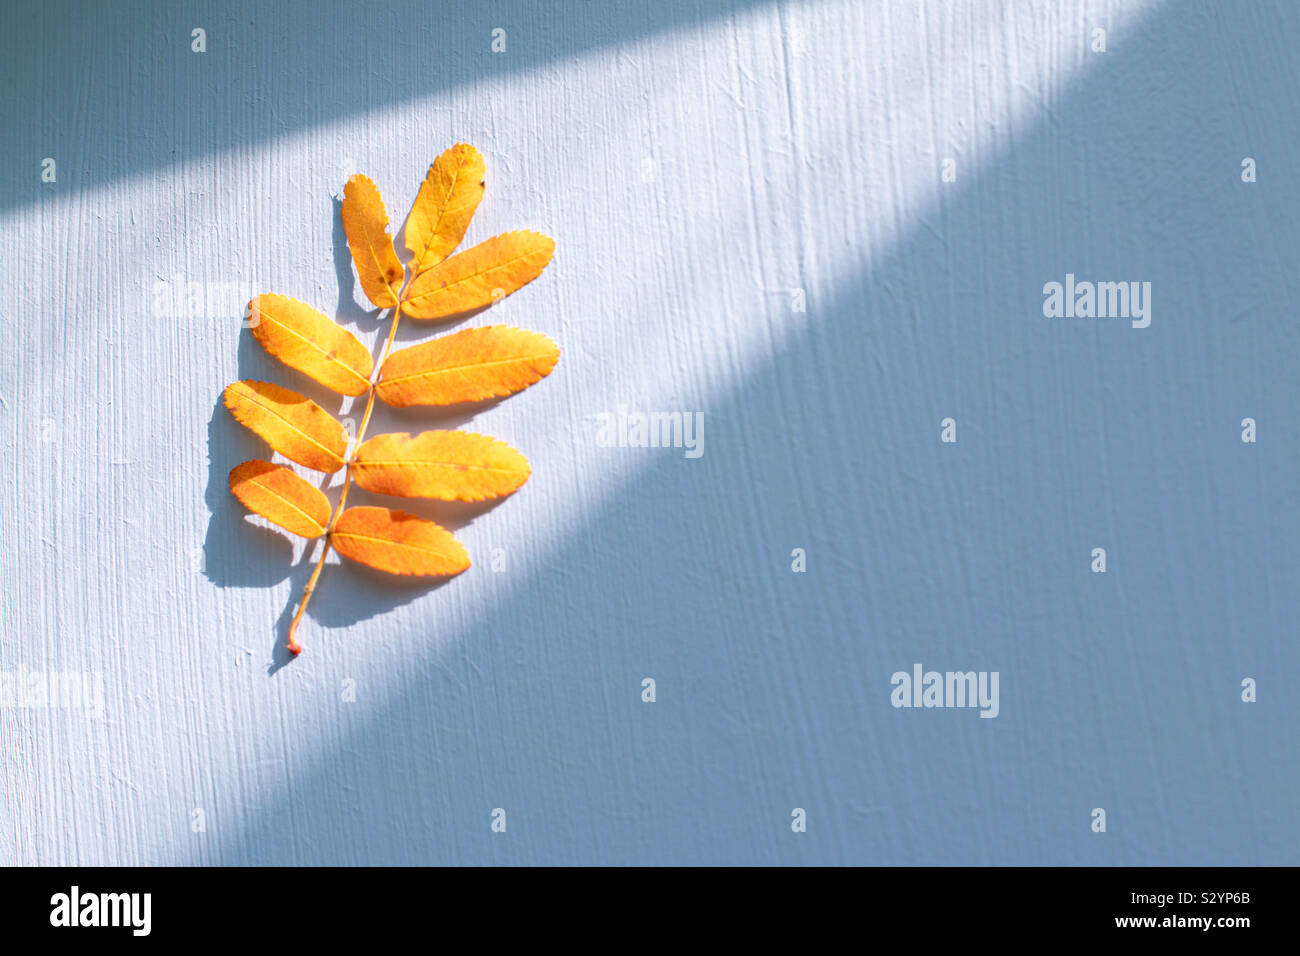 Rowanberry yellow leaf with space for text Stock Photo